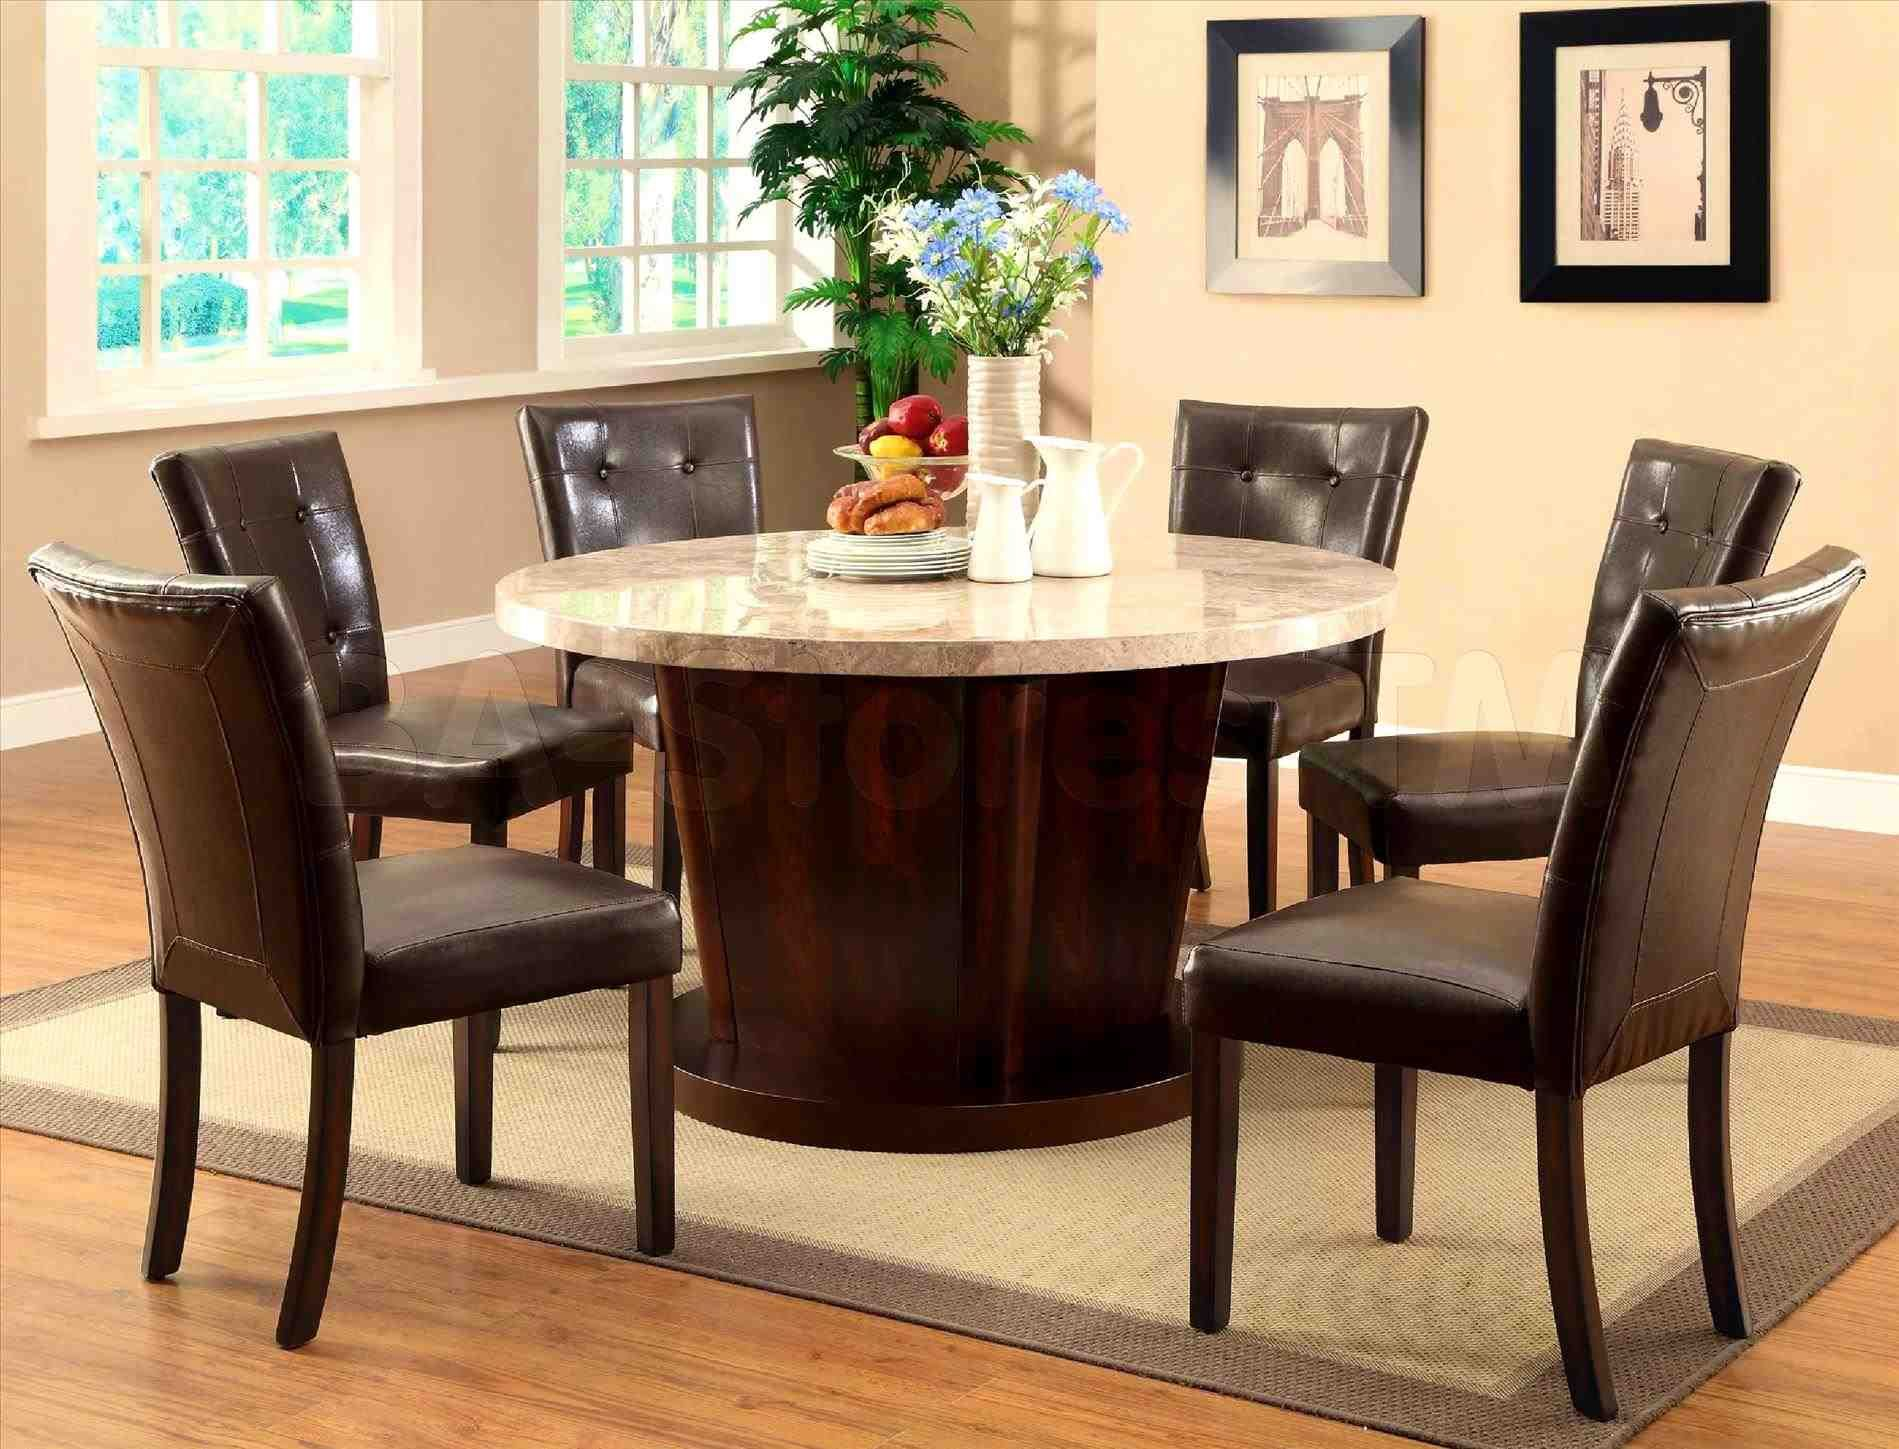 New Post Round Dining Table For 6 Dimensions  Decors Ideas Interesting Kitchen Table Chairs Design Inspiration